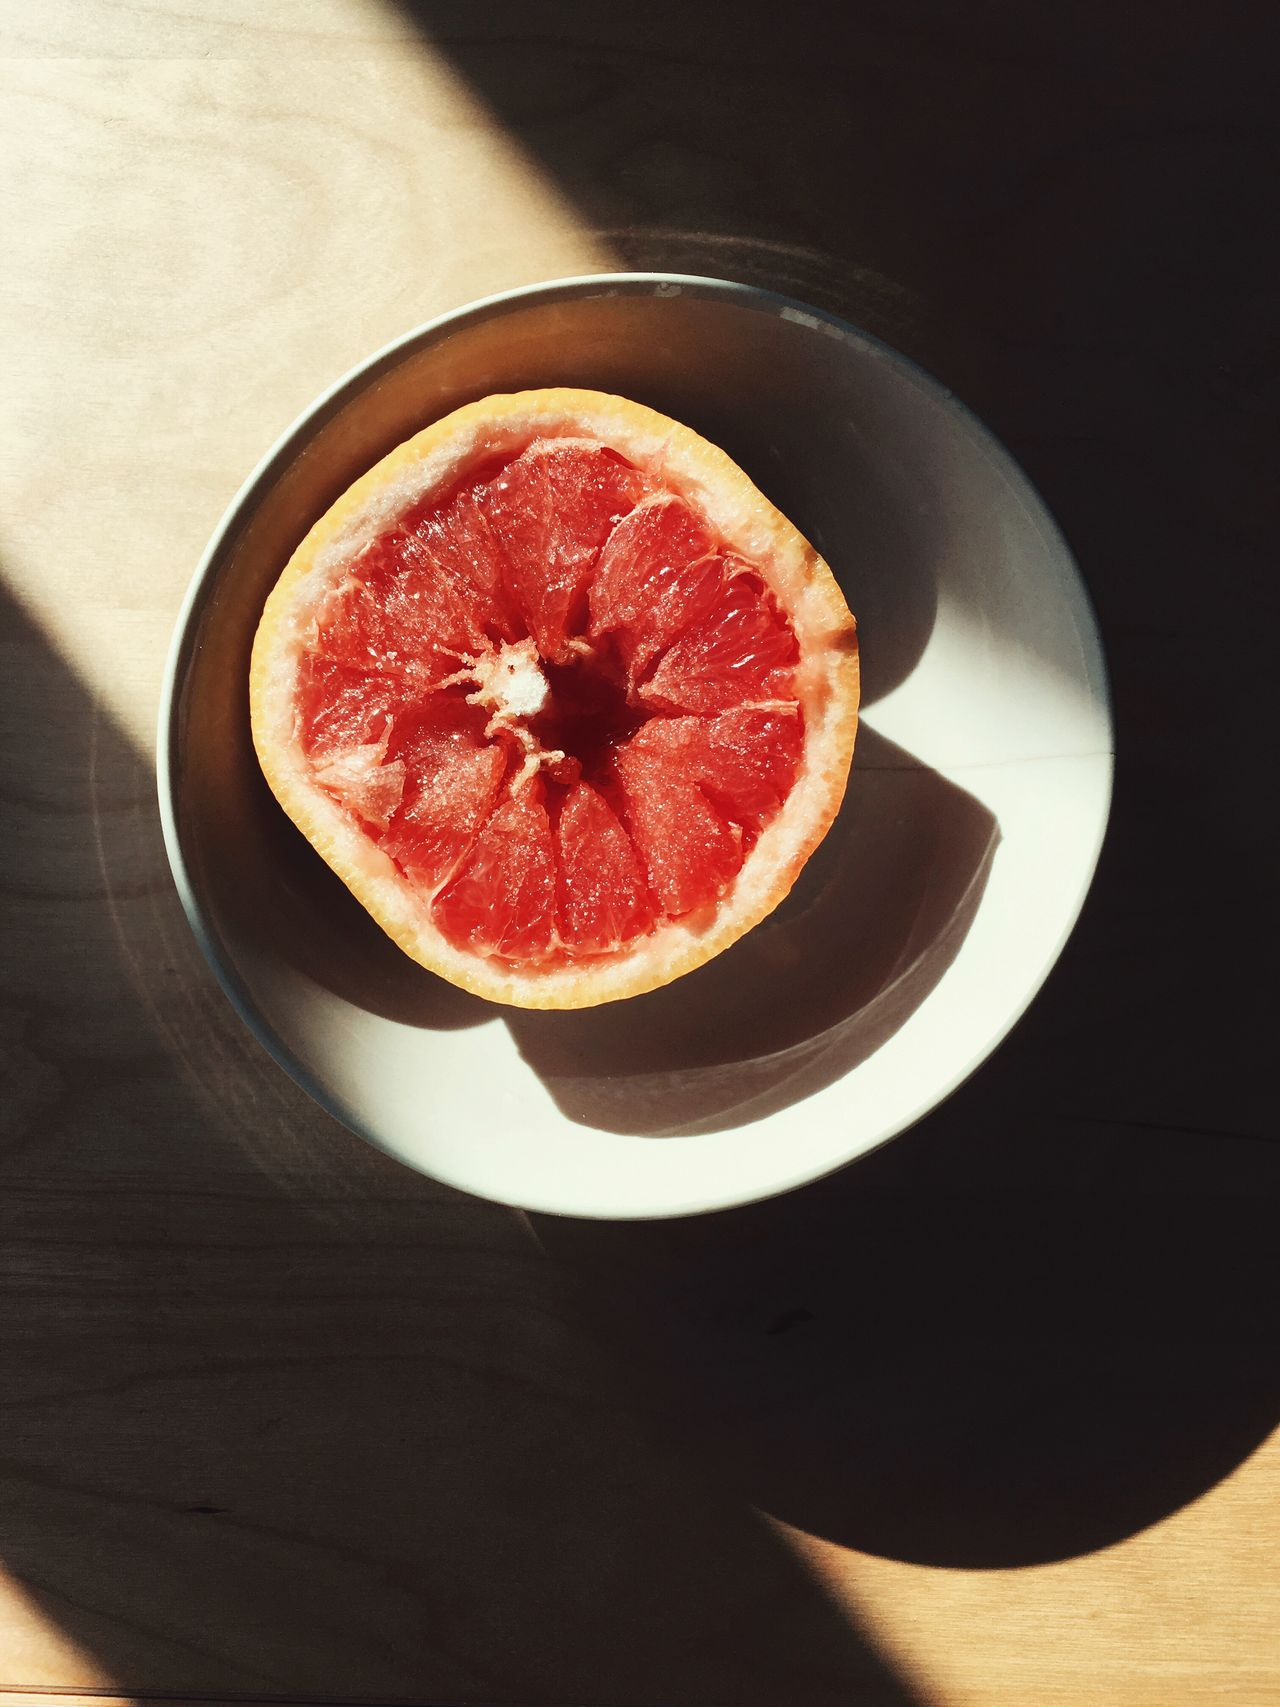 Grapefruit Fruit Breakfast Light And Shadow Table Wooden Table High Angle View View From Above Fresh Healthy Eating Lifestyle Freshness Directly Above Food SLICE Indoors  Ready-to-eat Halved Plate